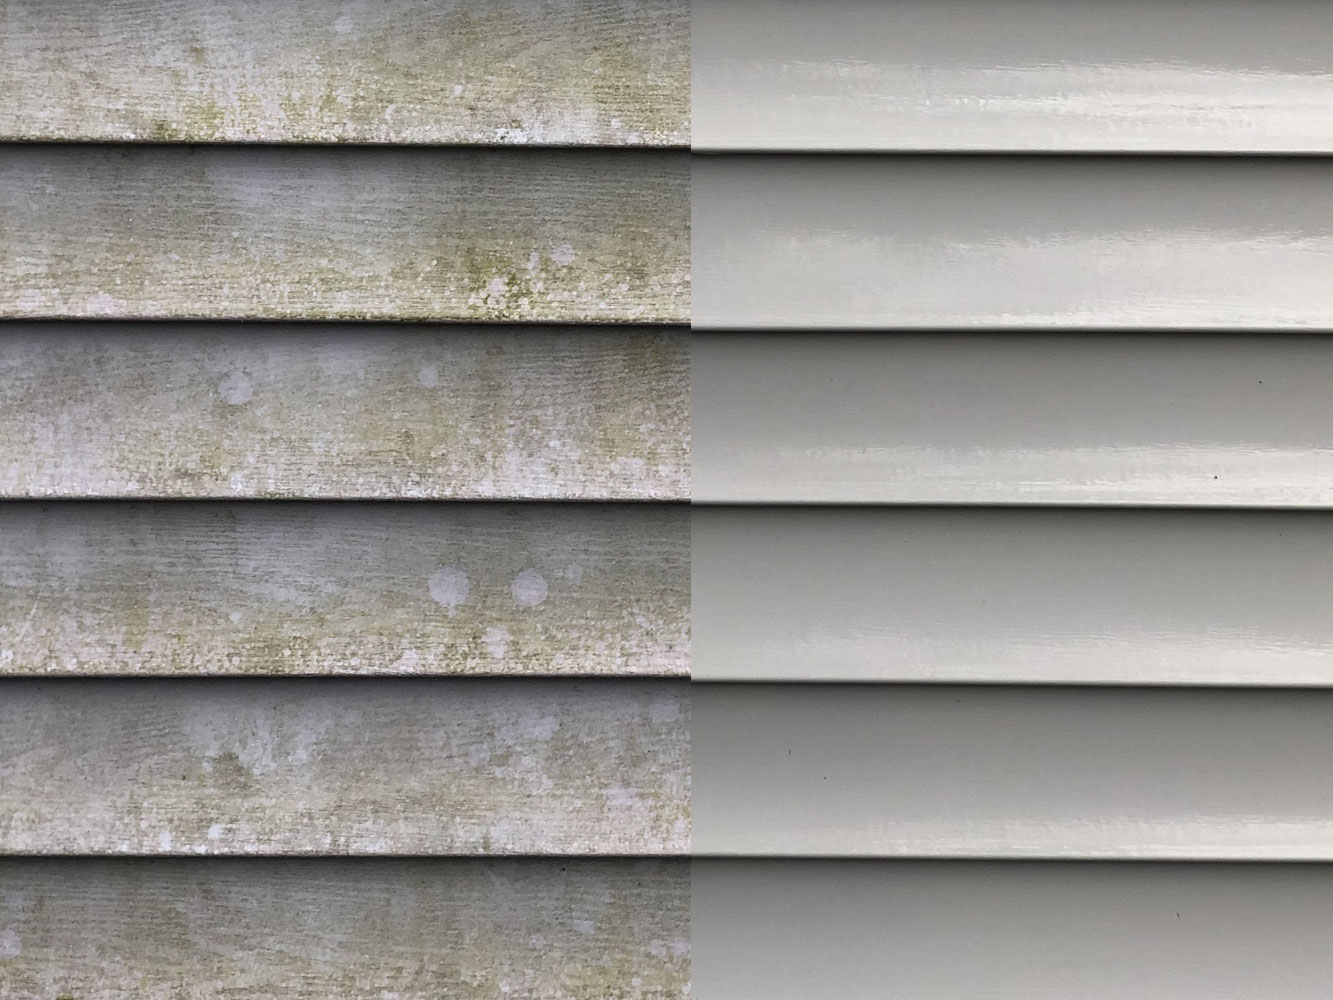 Siding that has been washed clean of dirt and black streaks